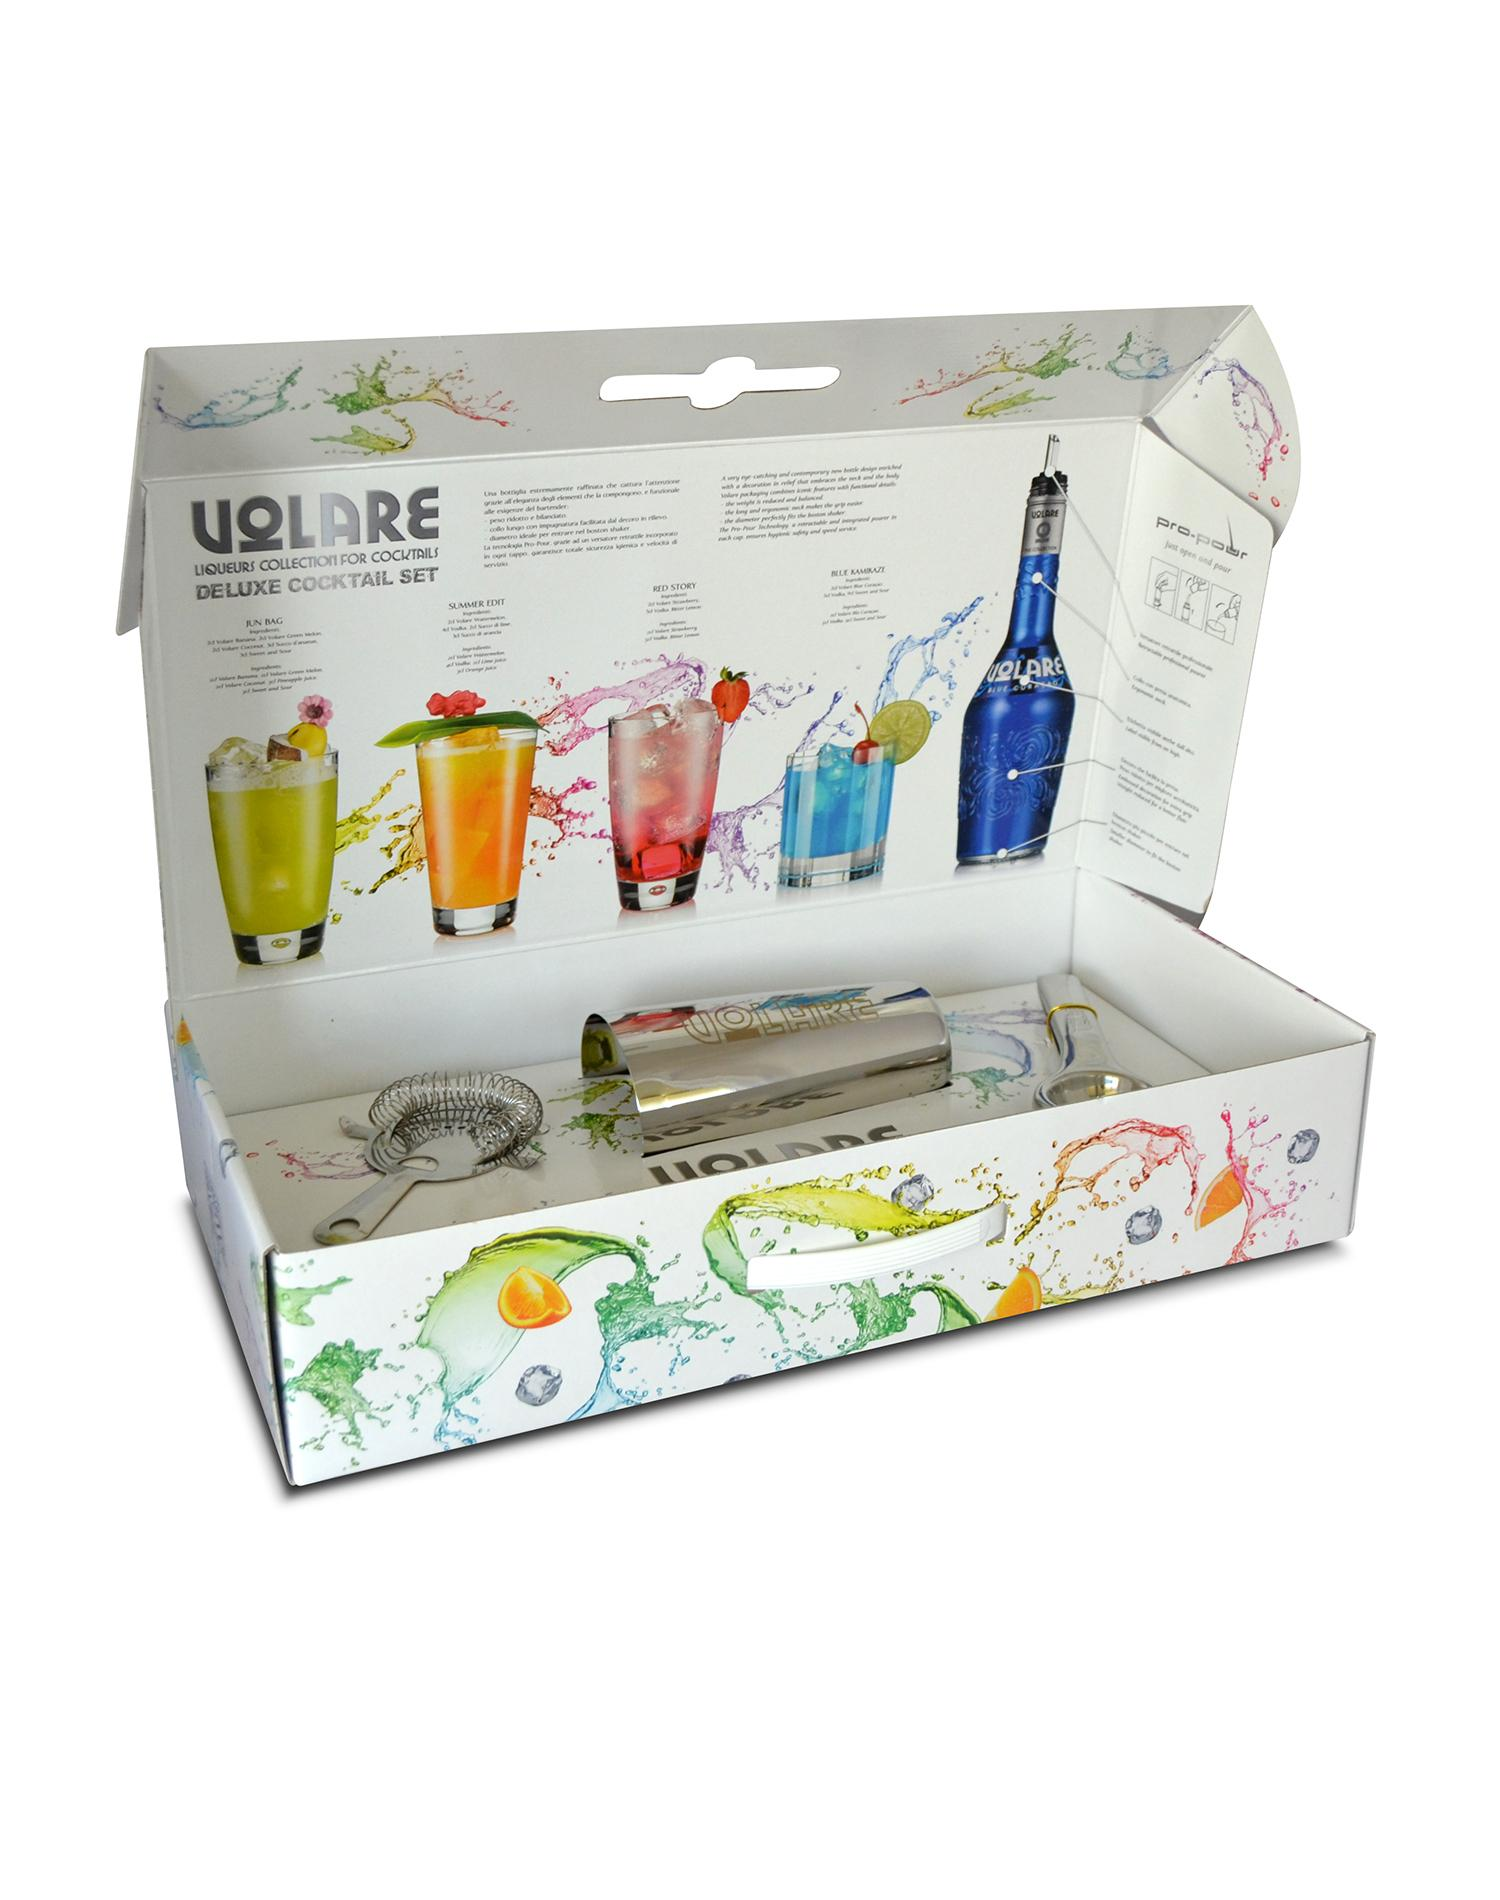 Valigetta Volare Cocktail kit